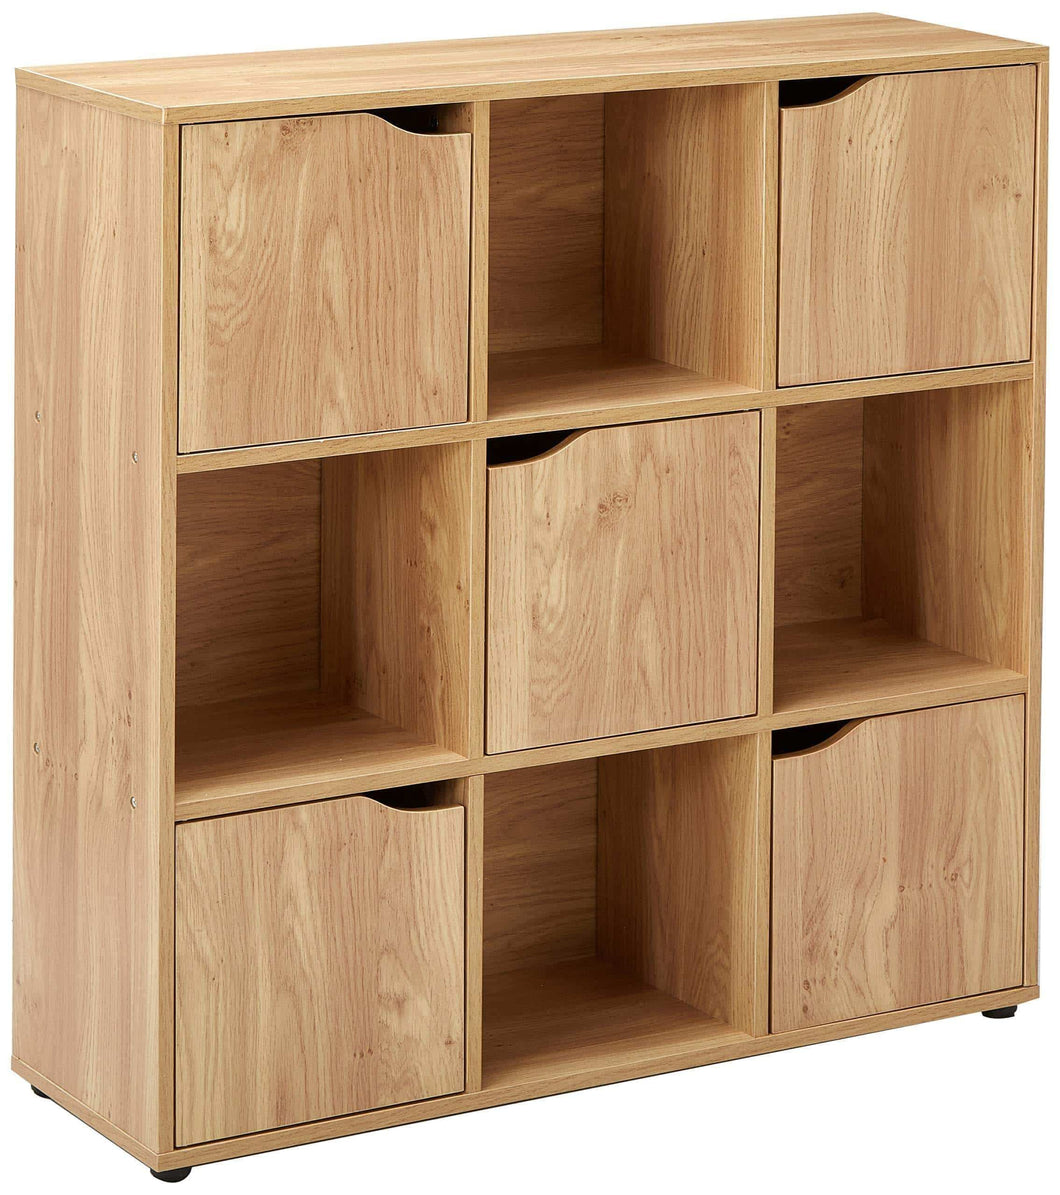 Save on home basics cube shelves natural wood shelf with doors room clothes storage home decor bookshelf toy organizer home office 4 open 5 cabinet style 9 c